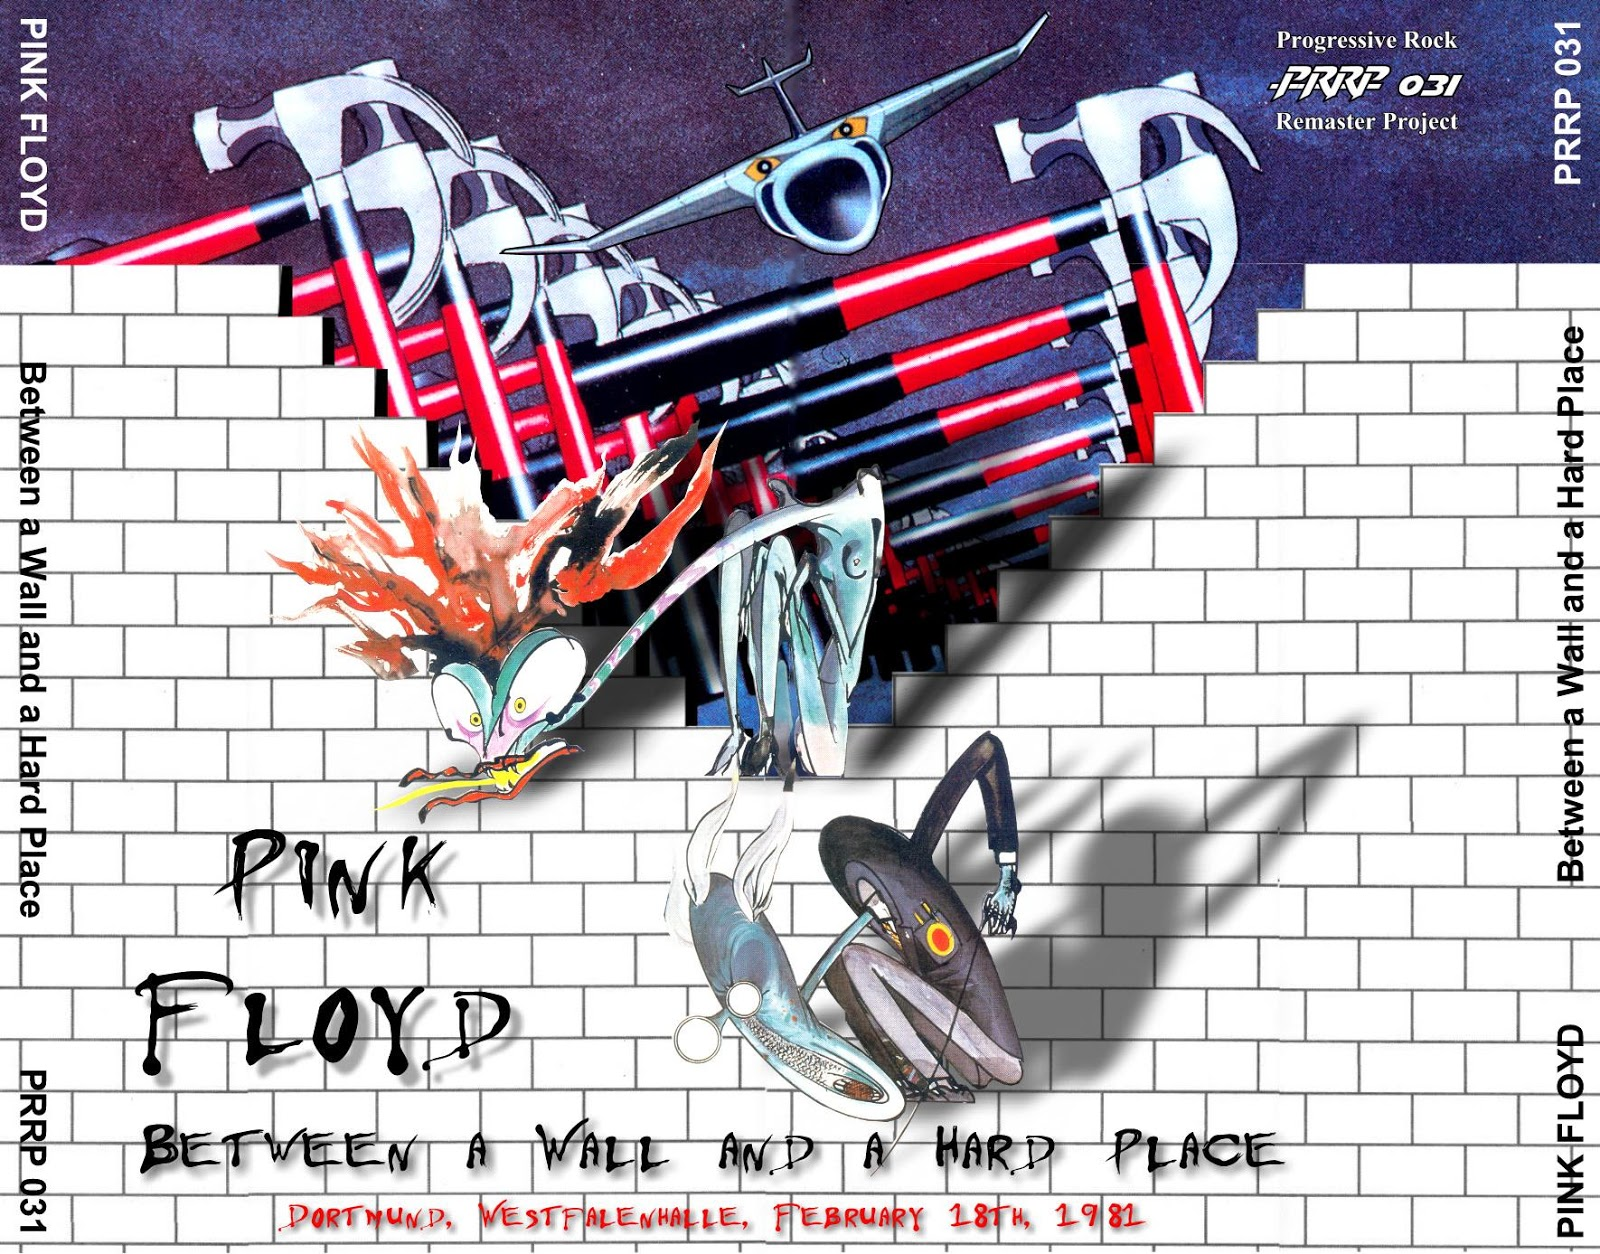 Reliquary Pink Floyd 19810218 Between A Wall And A Hard Place